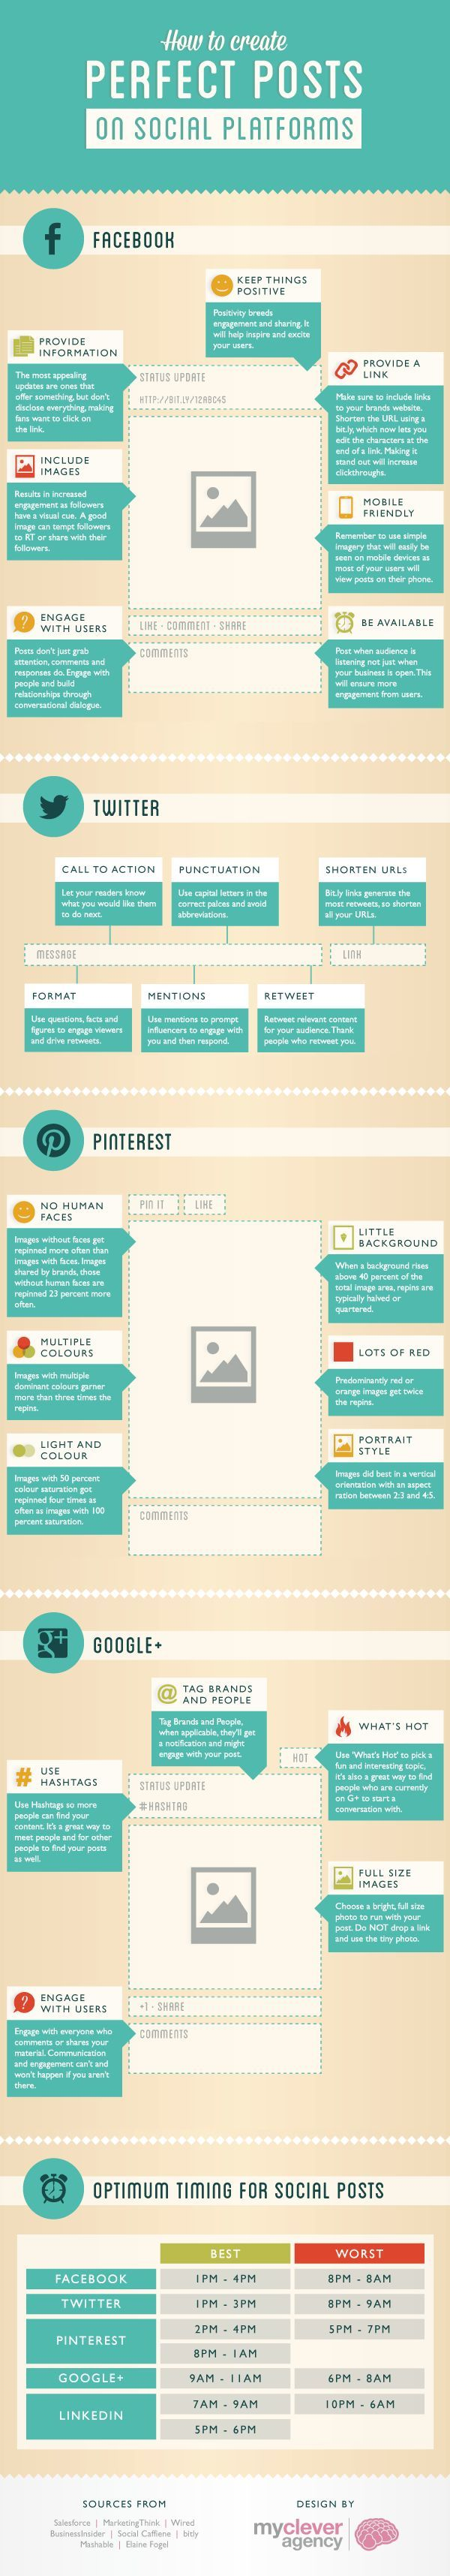 What is the perfect status update looking like on Google+, Facebook or Twitter? via Social Media Today